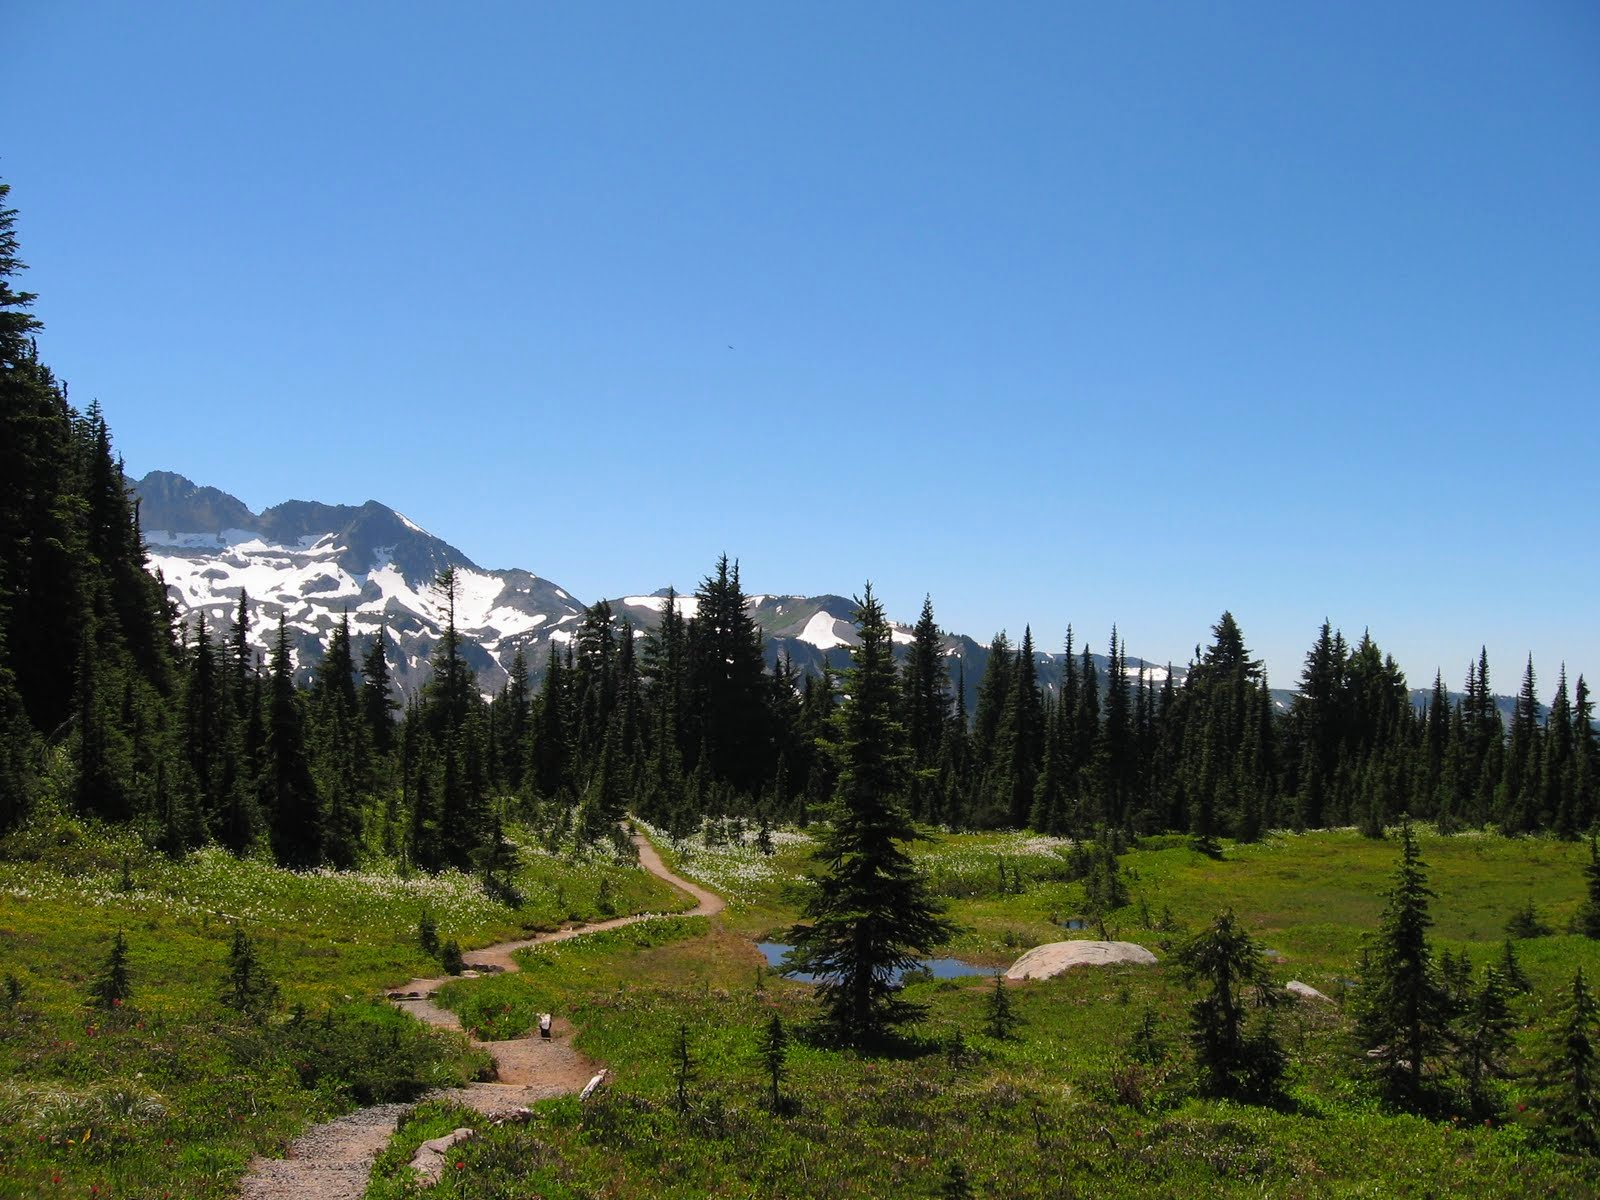 A dirt trail wides through Spray Park, an alpine meadow in Mt Rainier National Park. There are low shrubs and trees and wildflowers along the trail and evergreen trees circle the meadow. In the distance are snow capped mountains